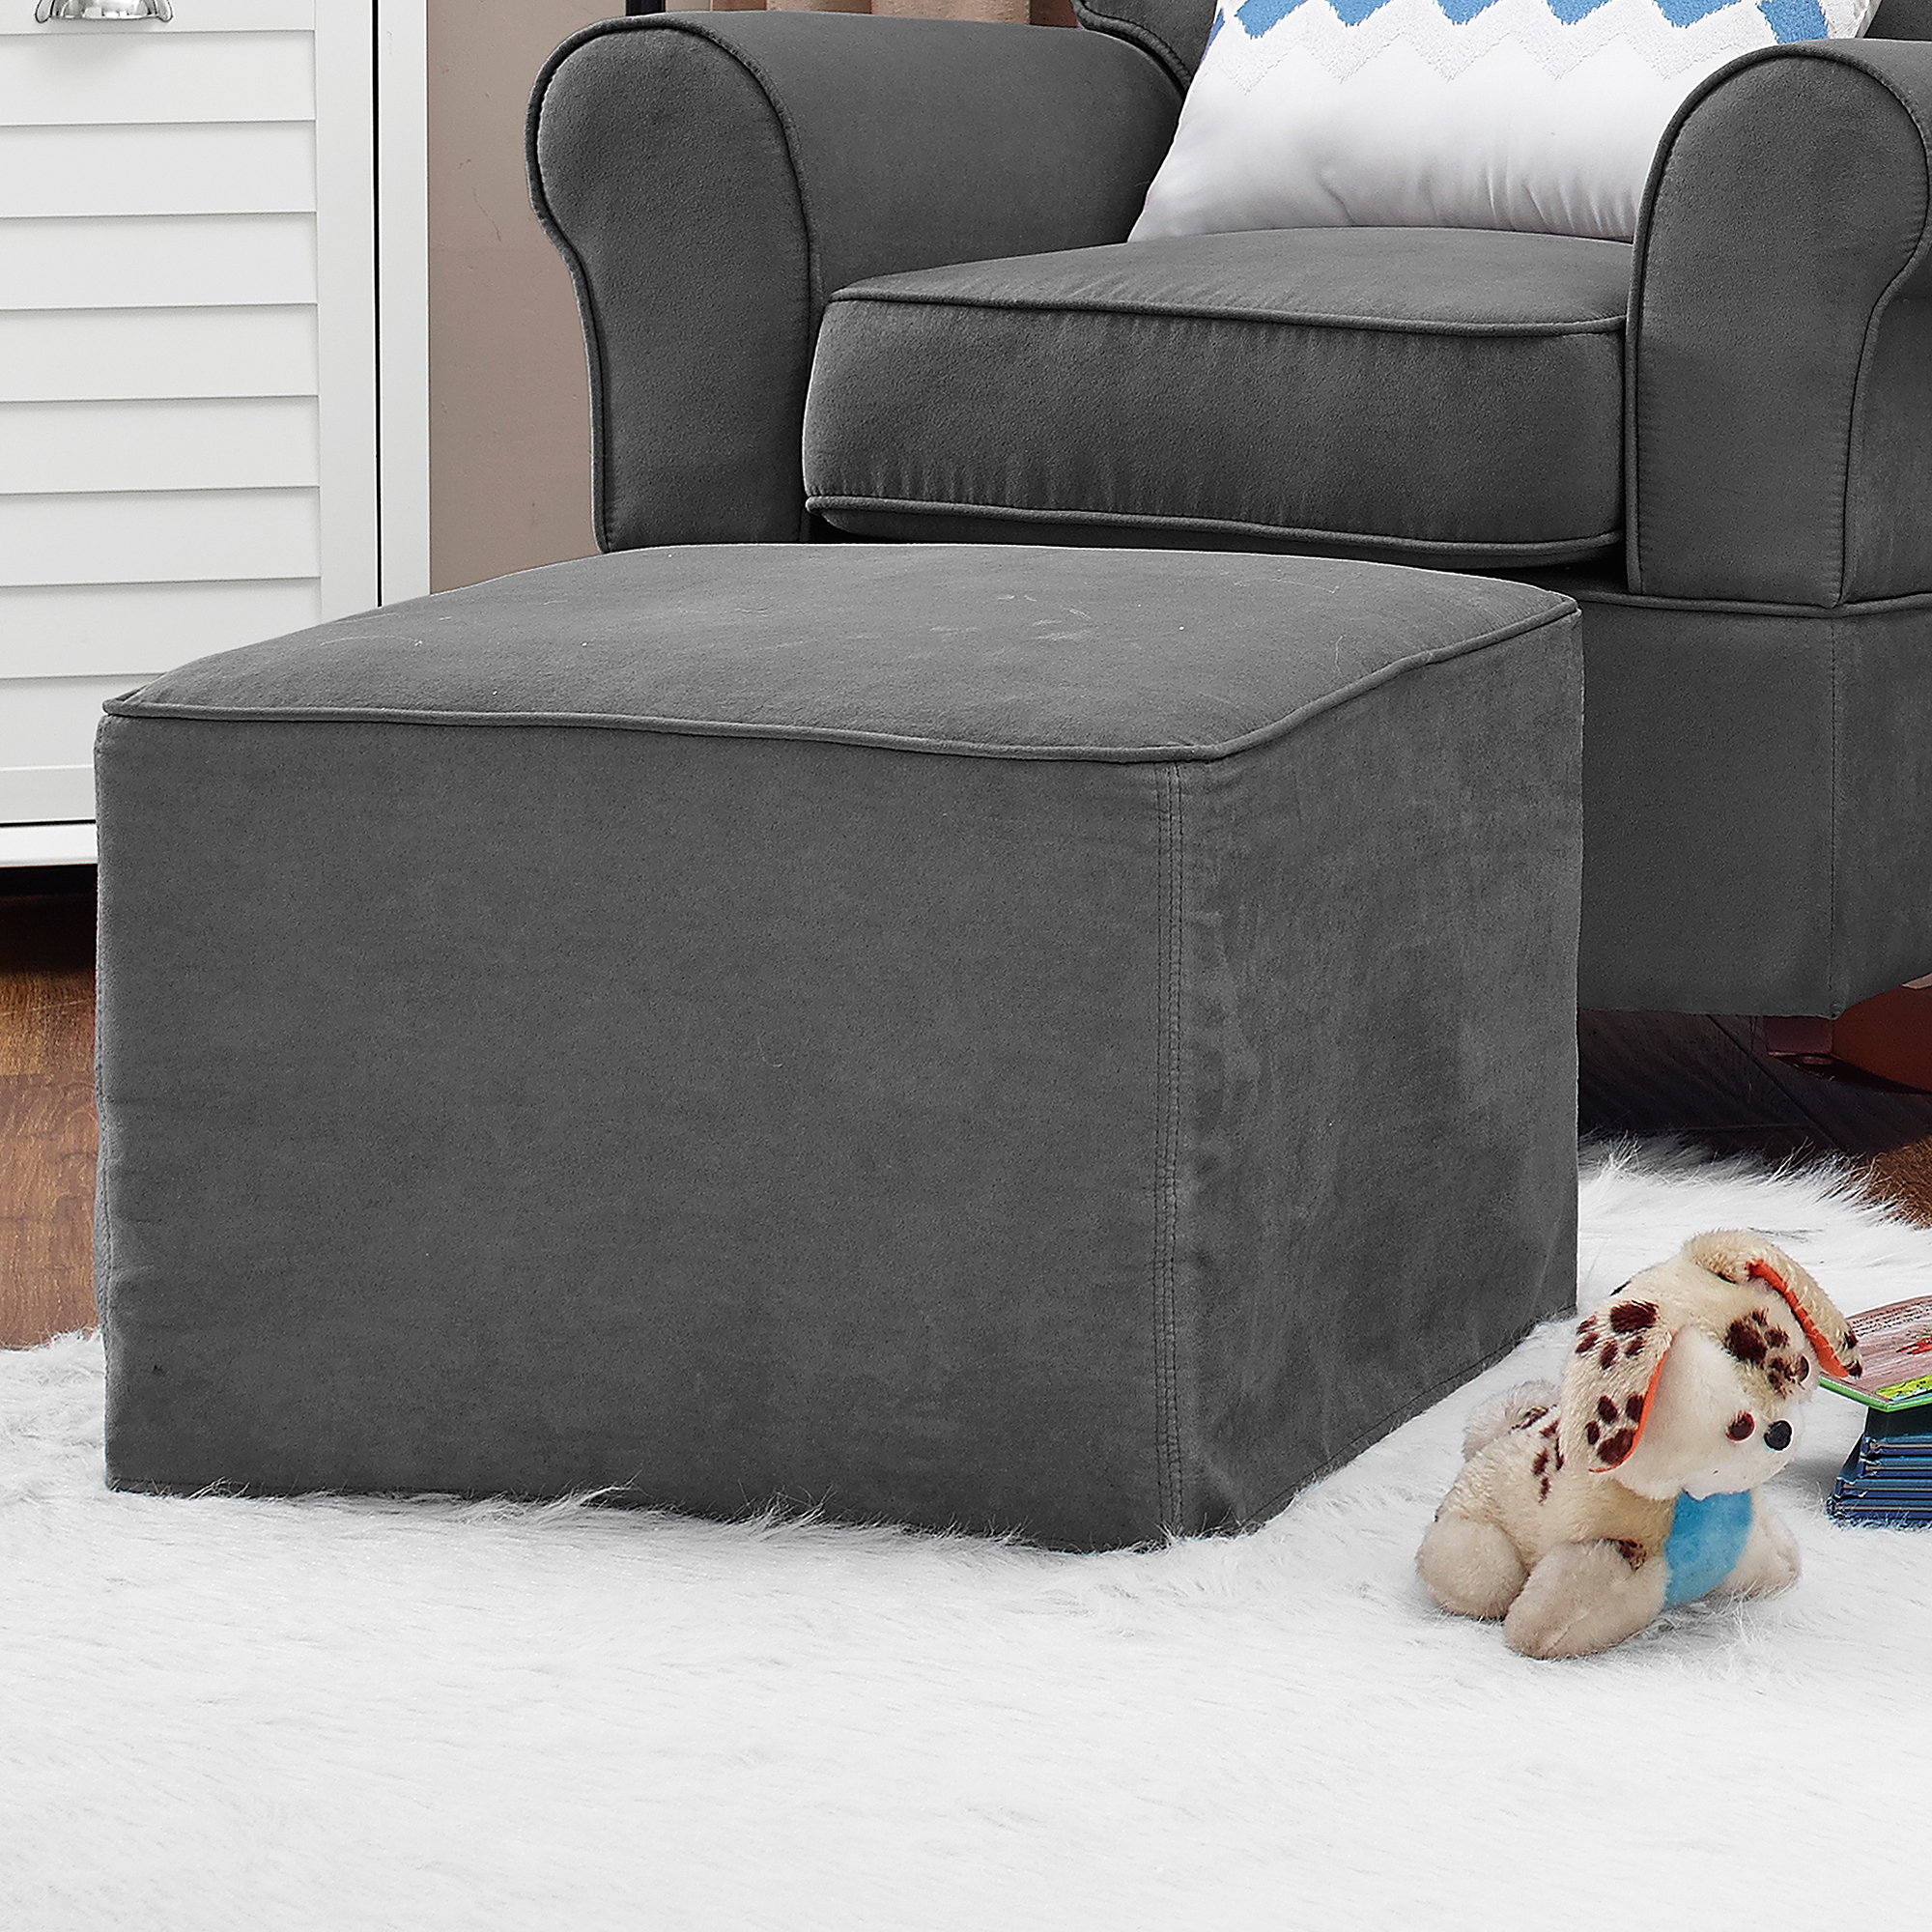 Abbey Swivel Glider Recliners With Fashionable Baby Relax Abby Rocker Gray – Walmart (Gallery 16 of 20)